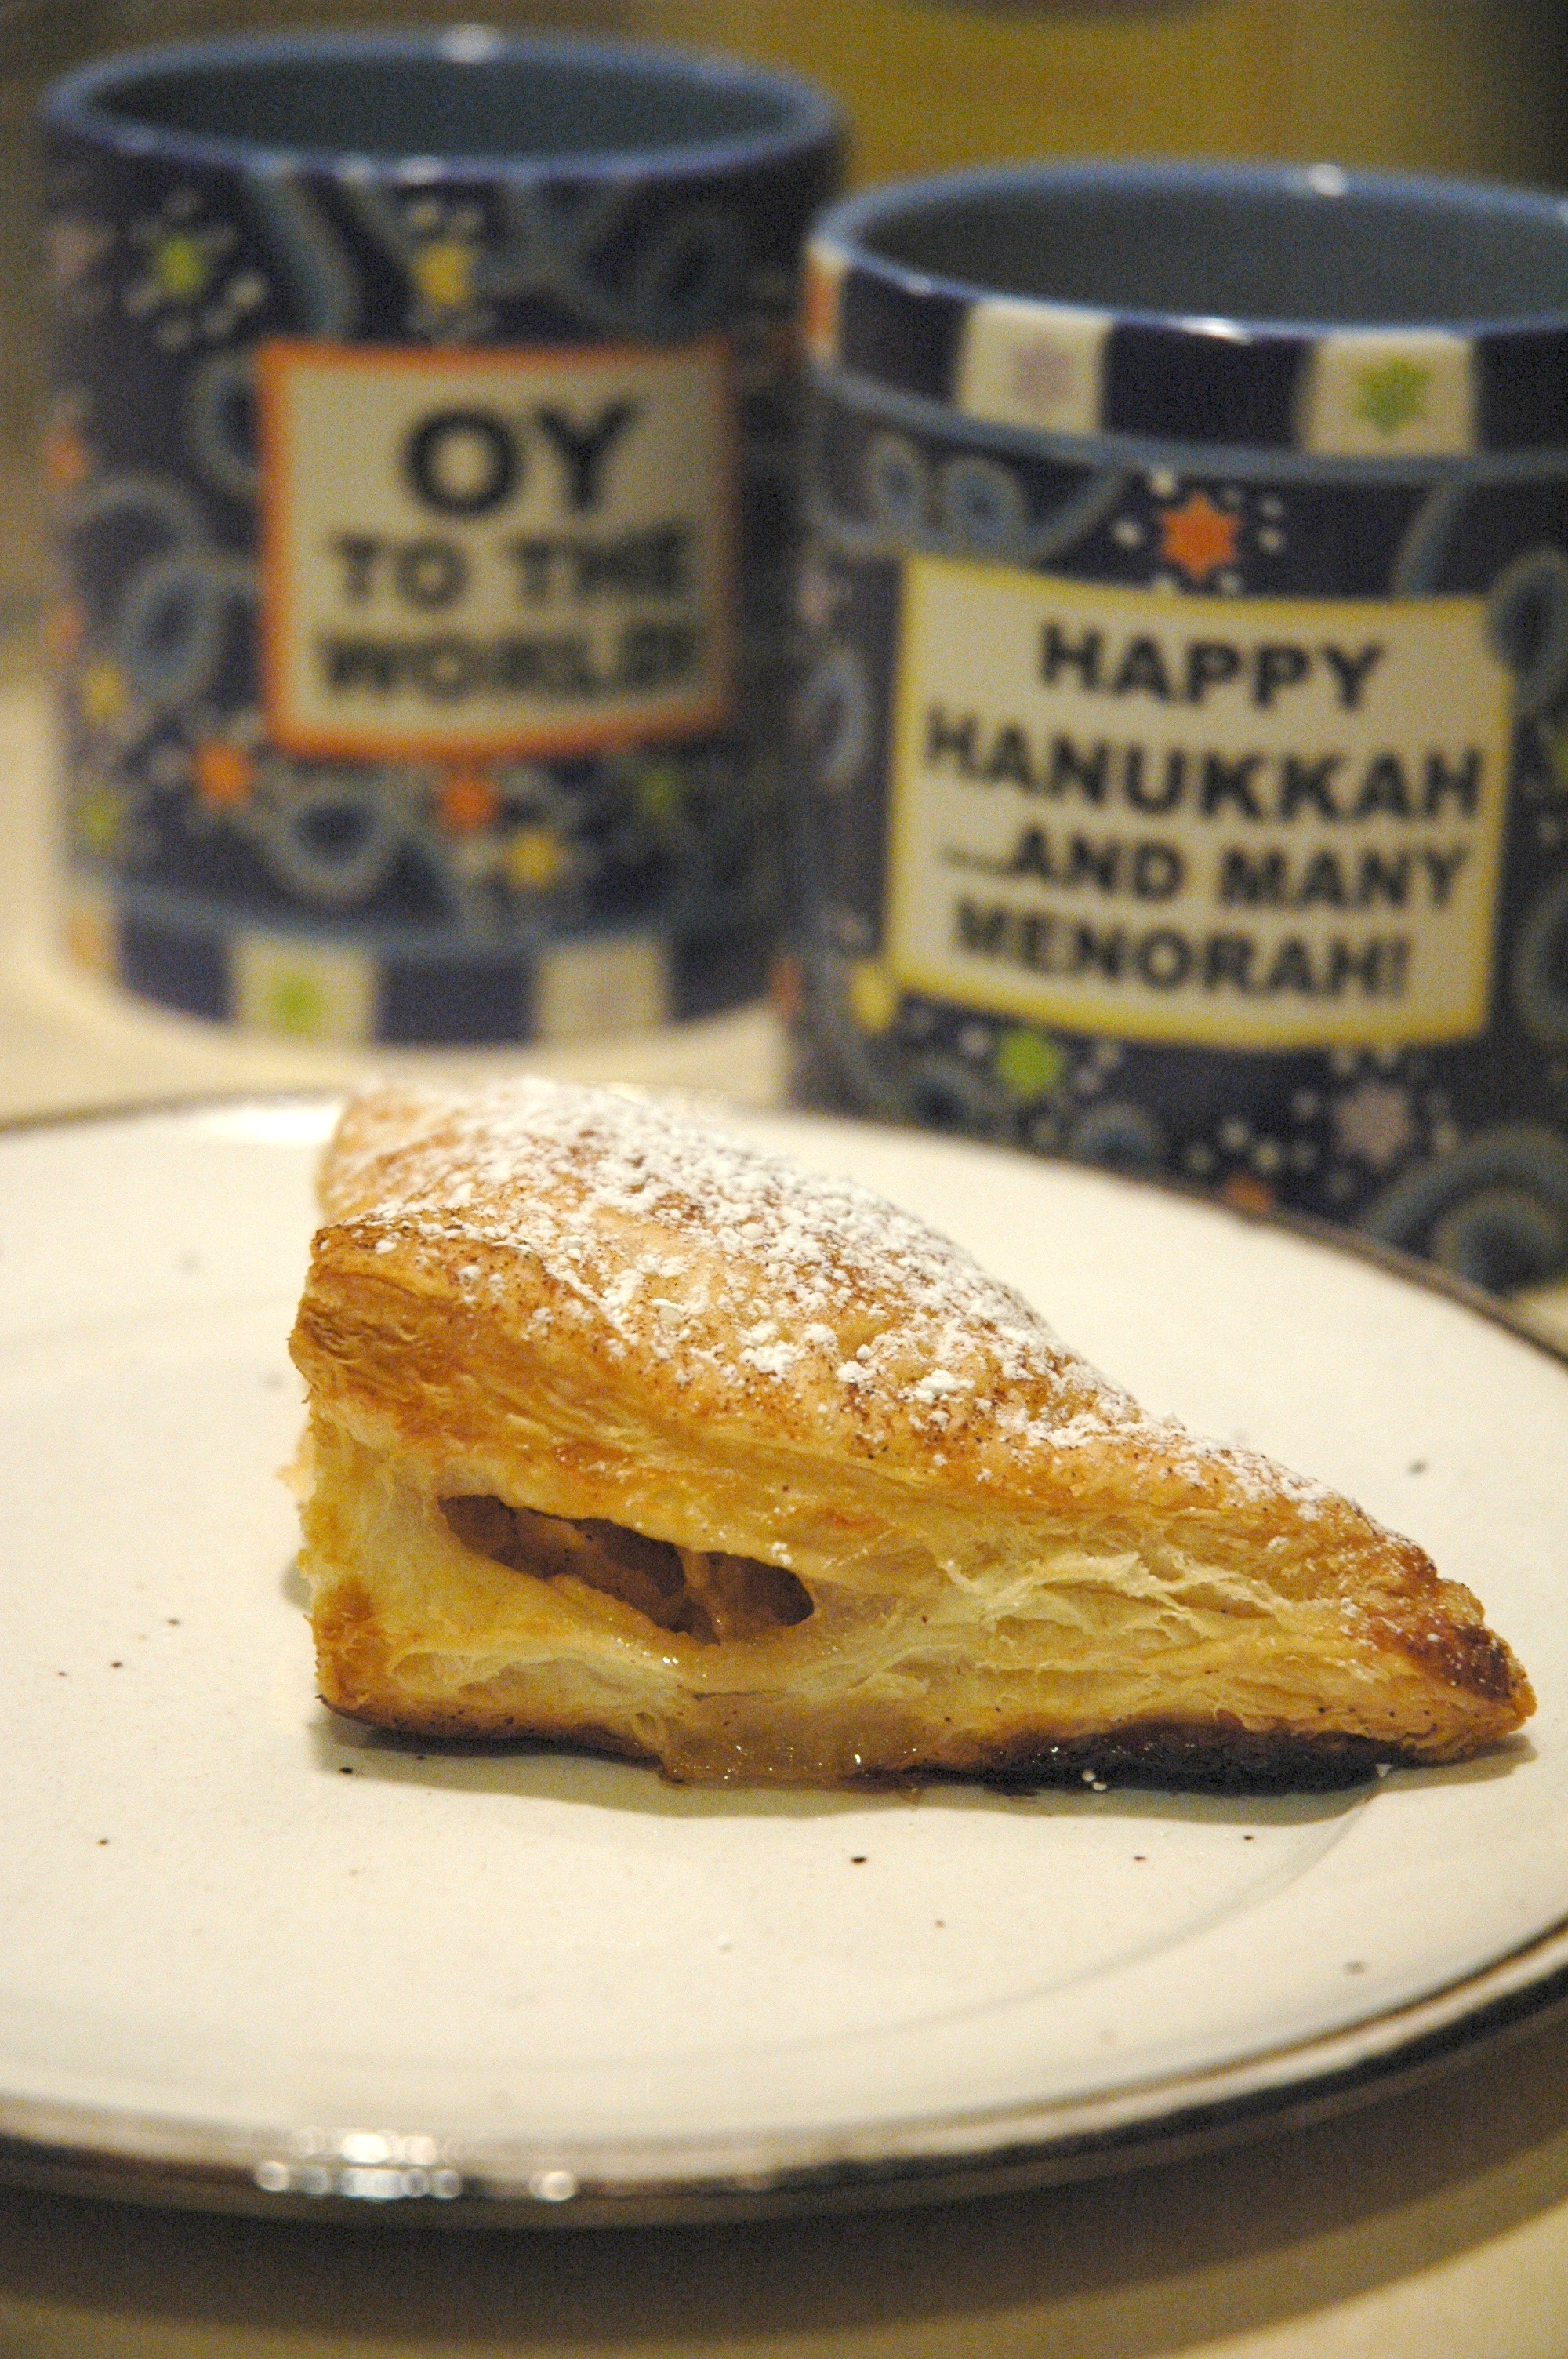 Happy Hanukkah: turnover style